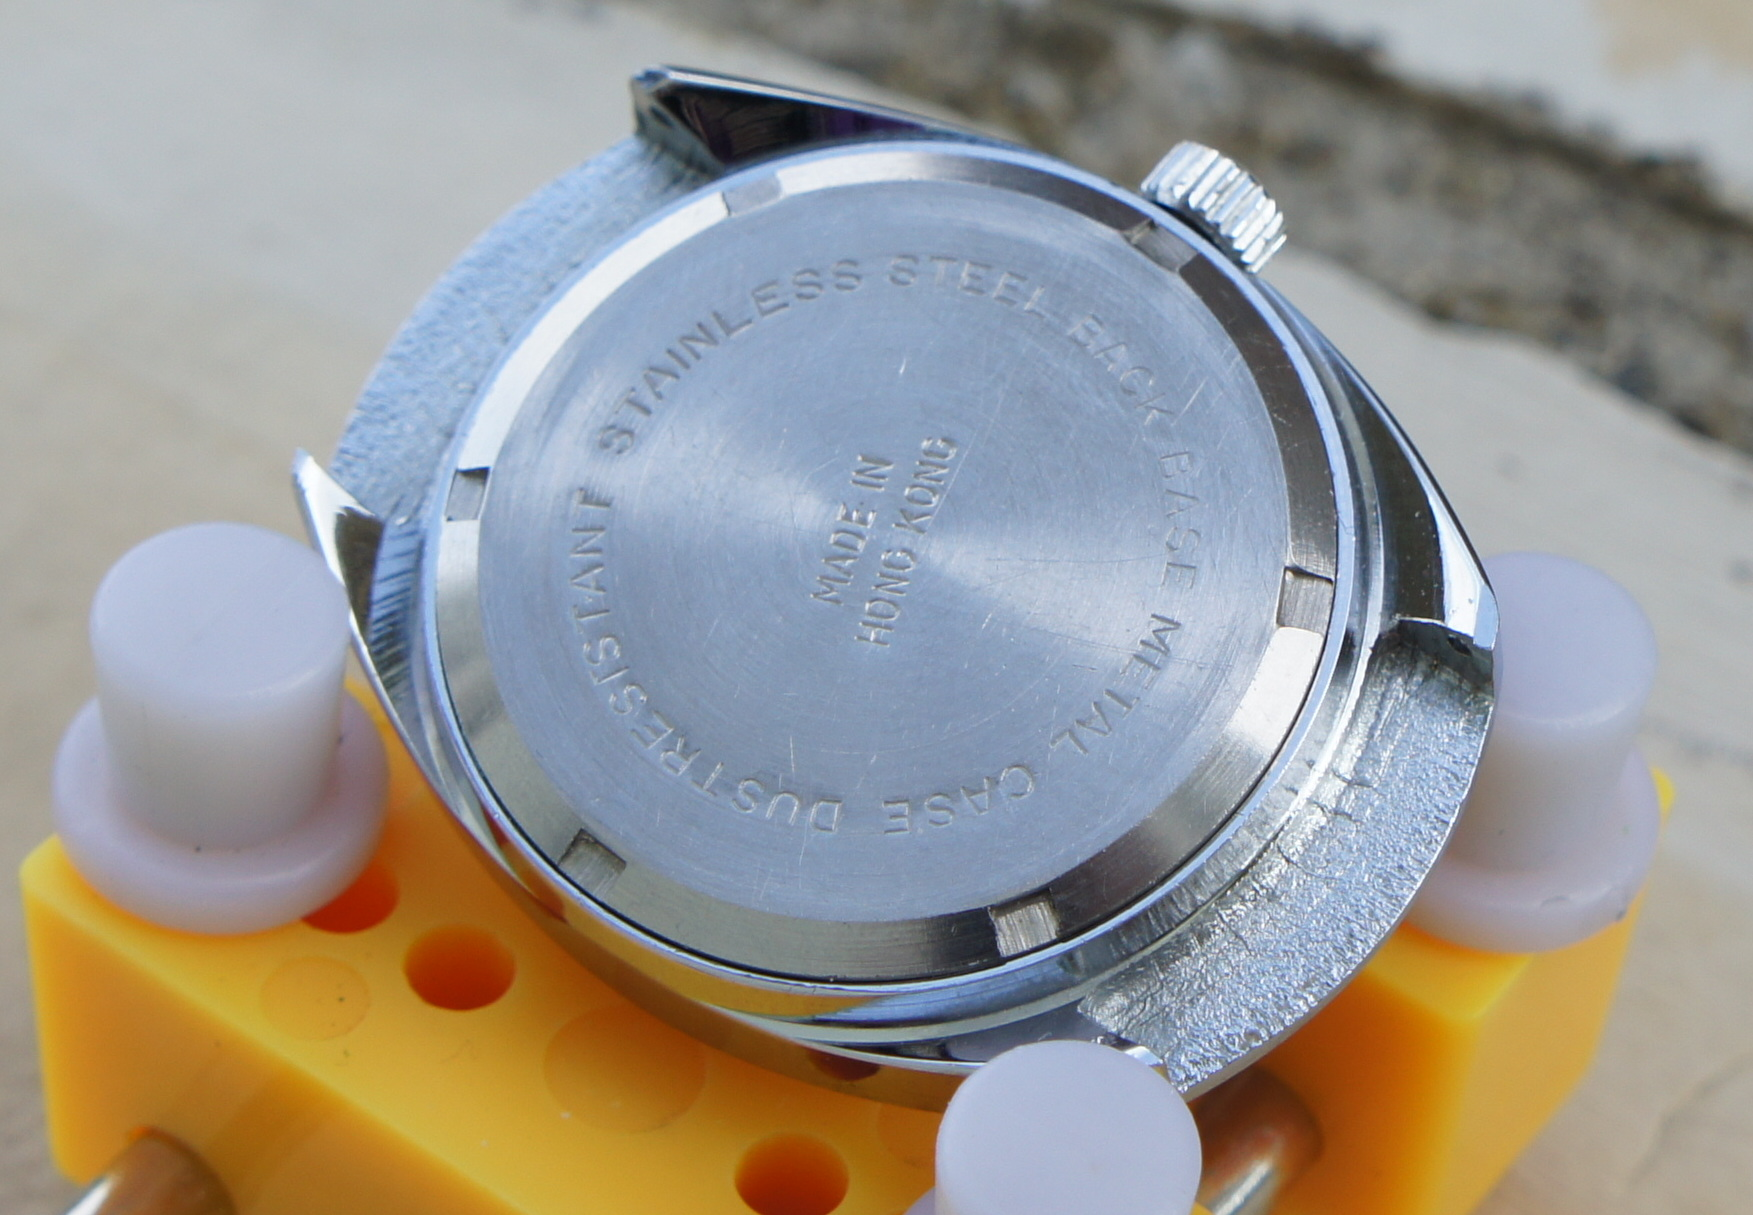 LTD Watches - Limited Edition Watches by LTD Watch ...